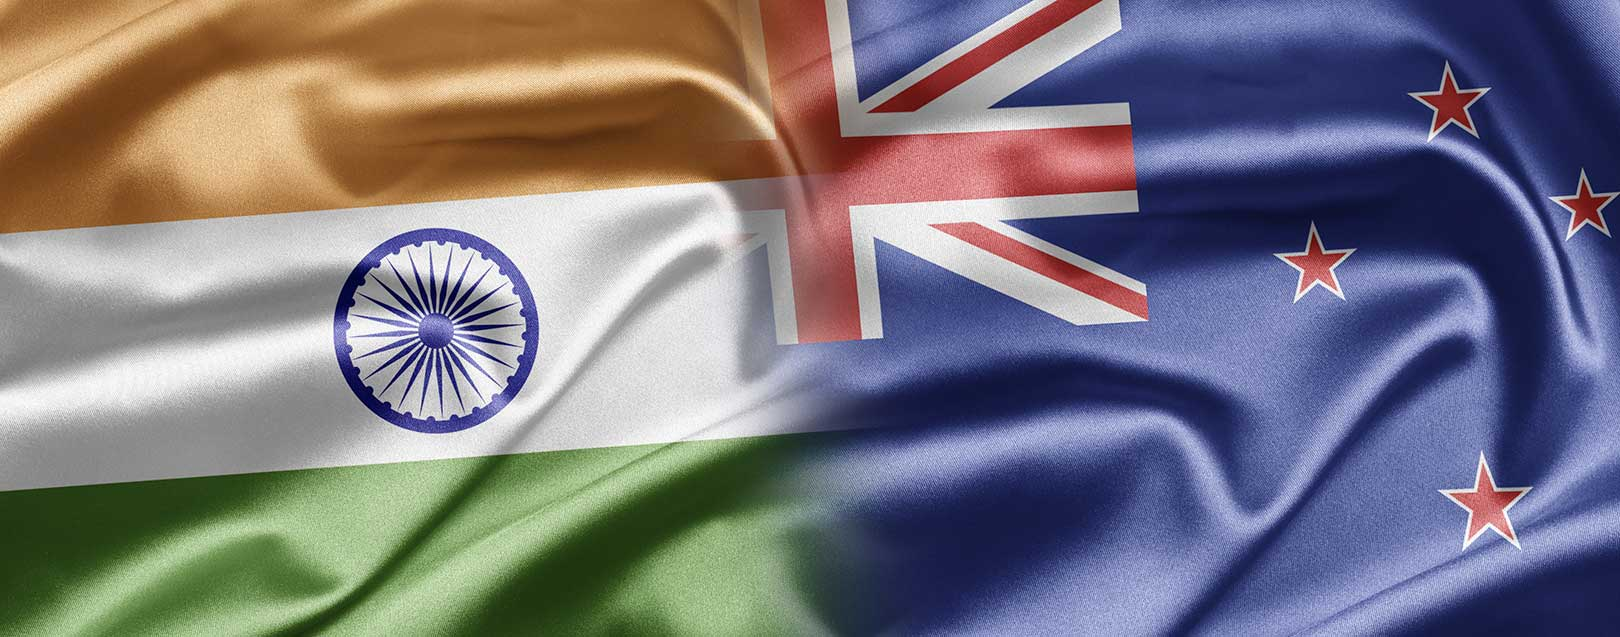 India New Zealand Sign 3rd Protocol For Tax Avoidance